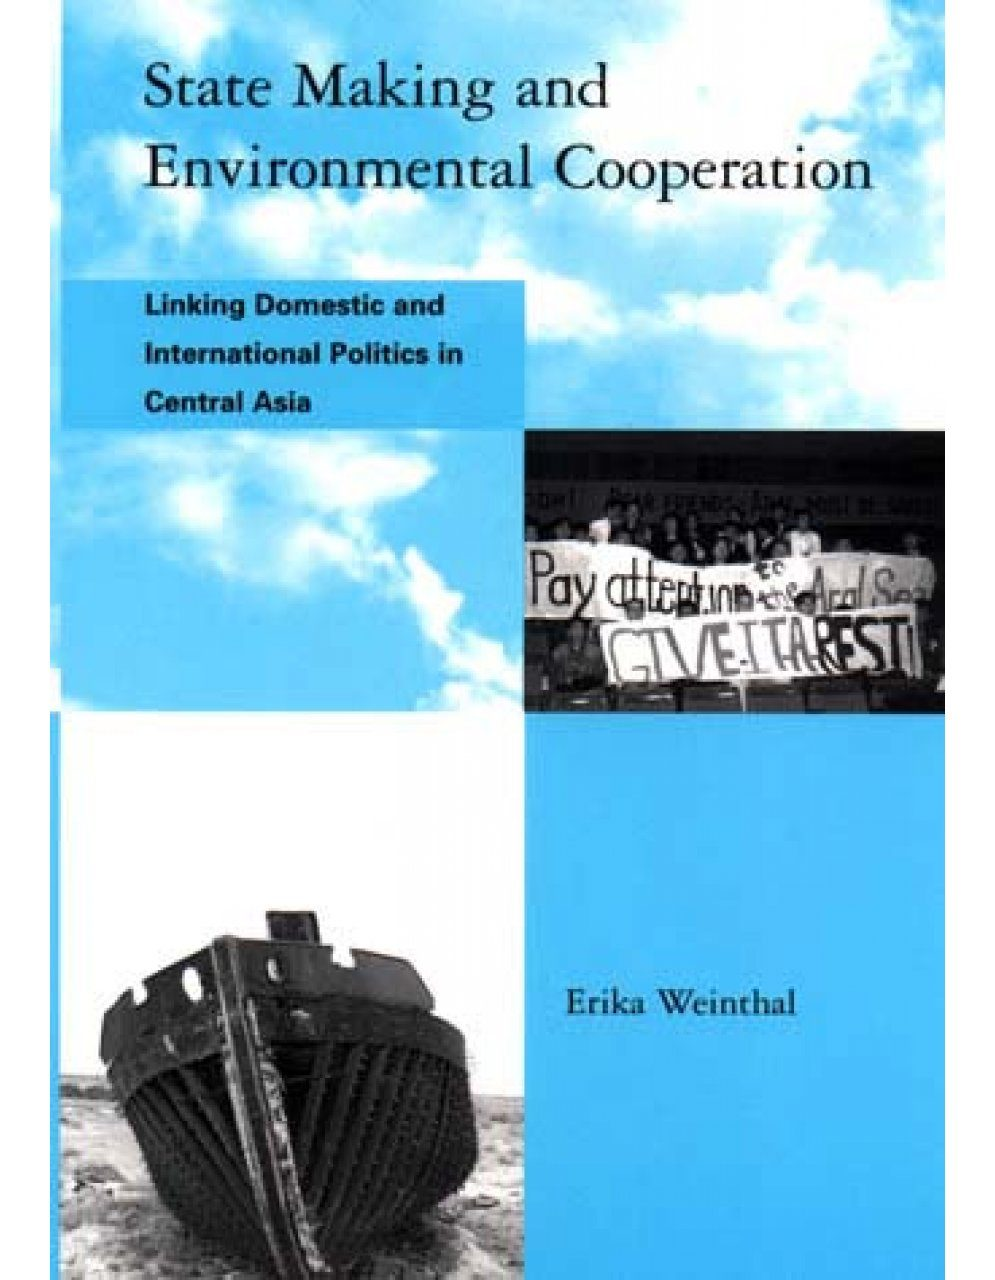 State Making and Environmental Cooperation